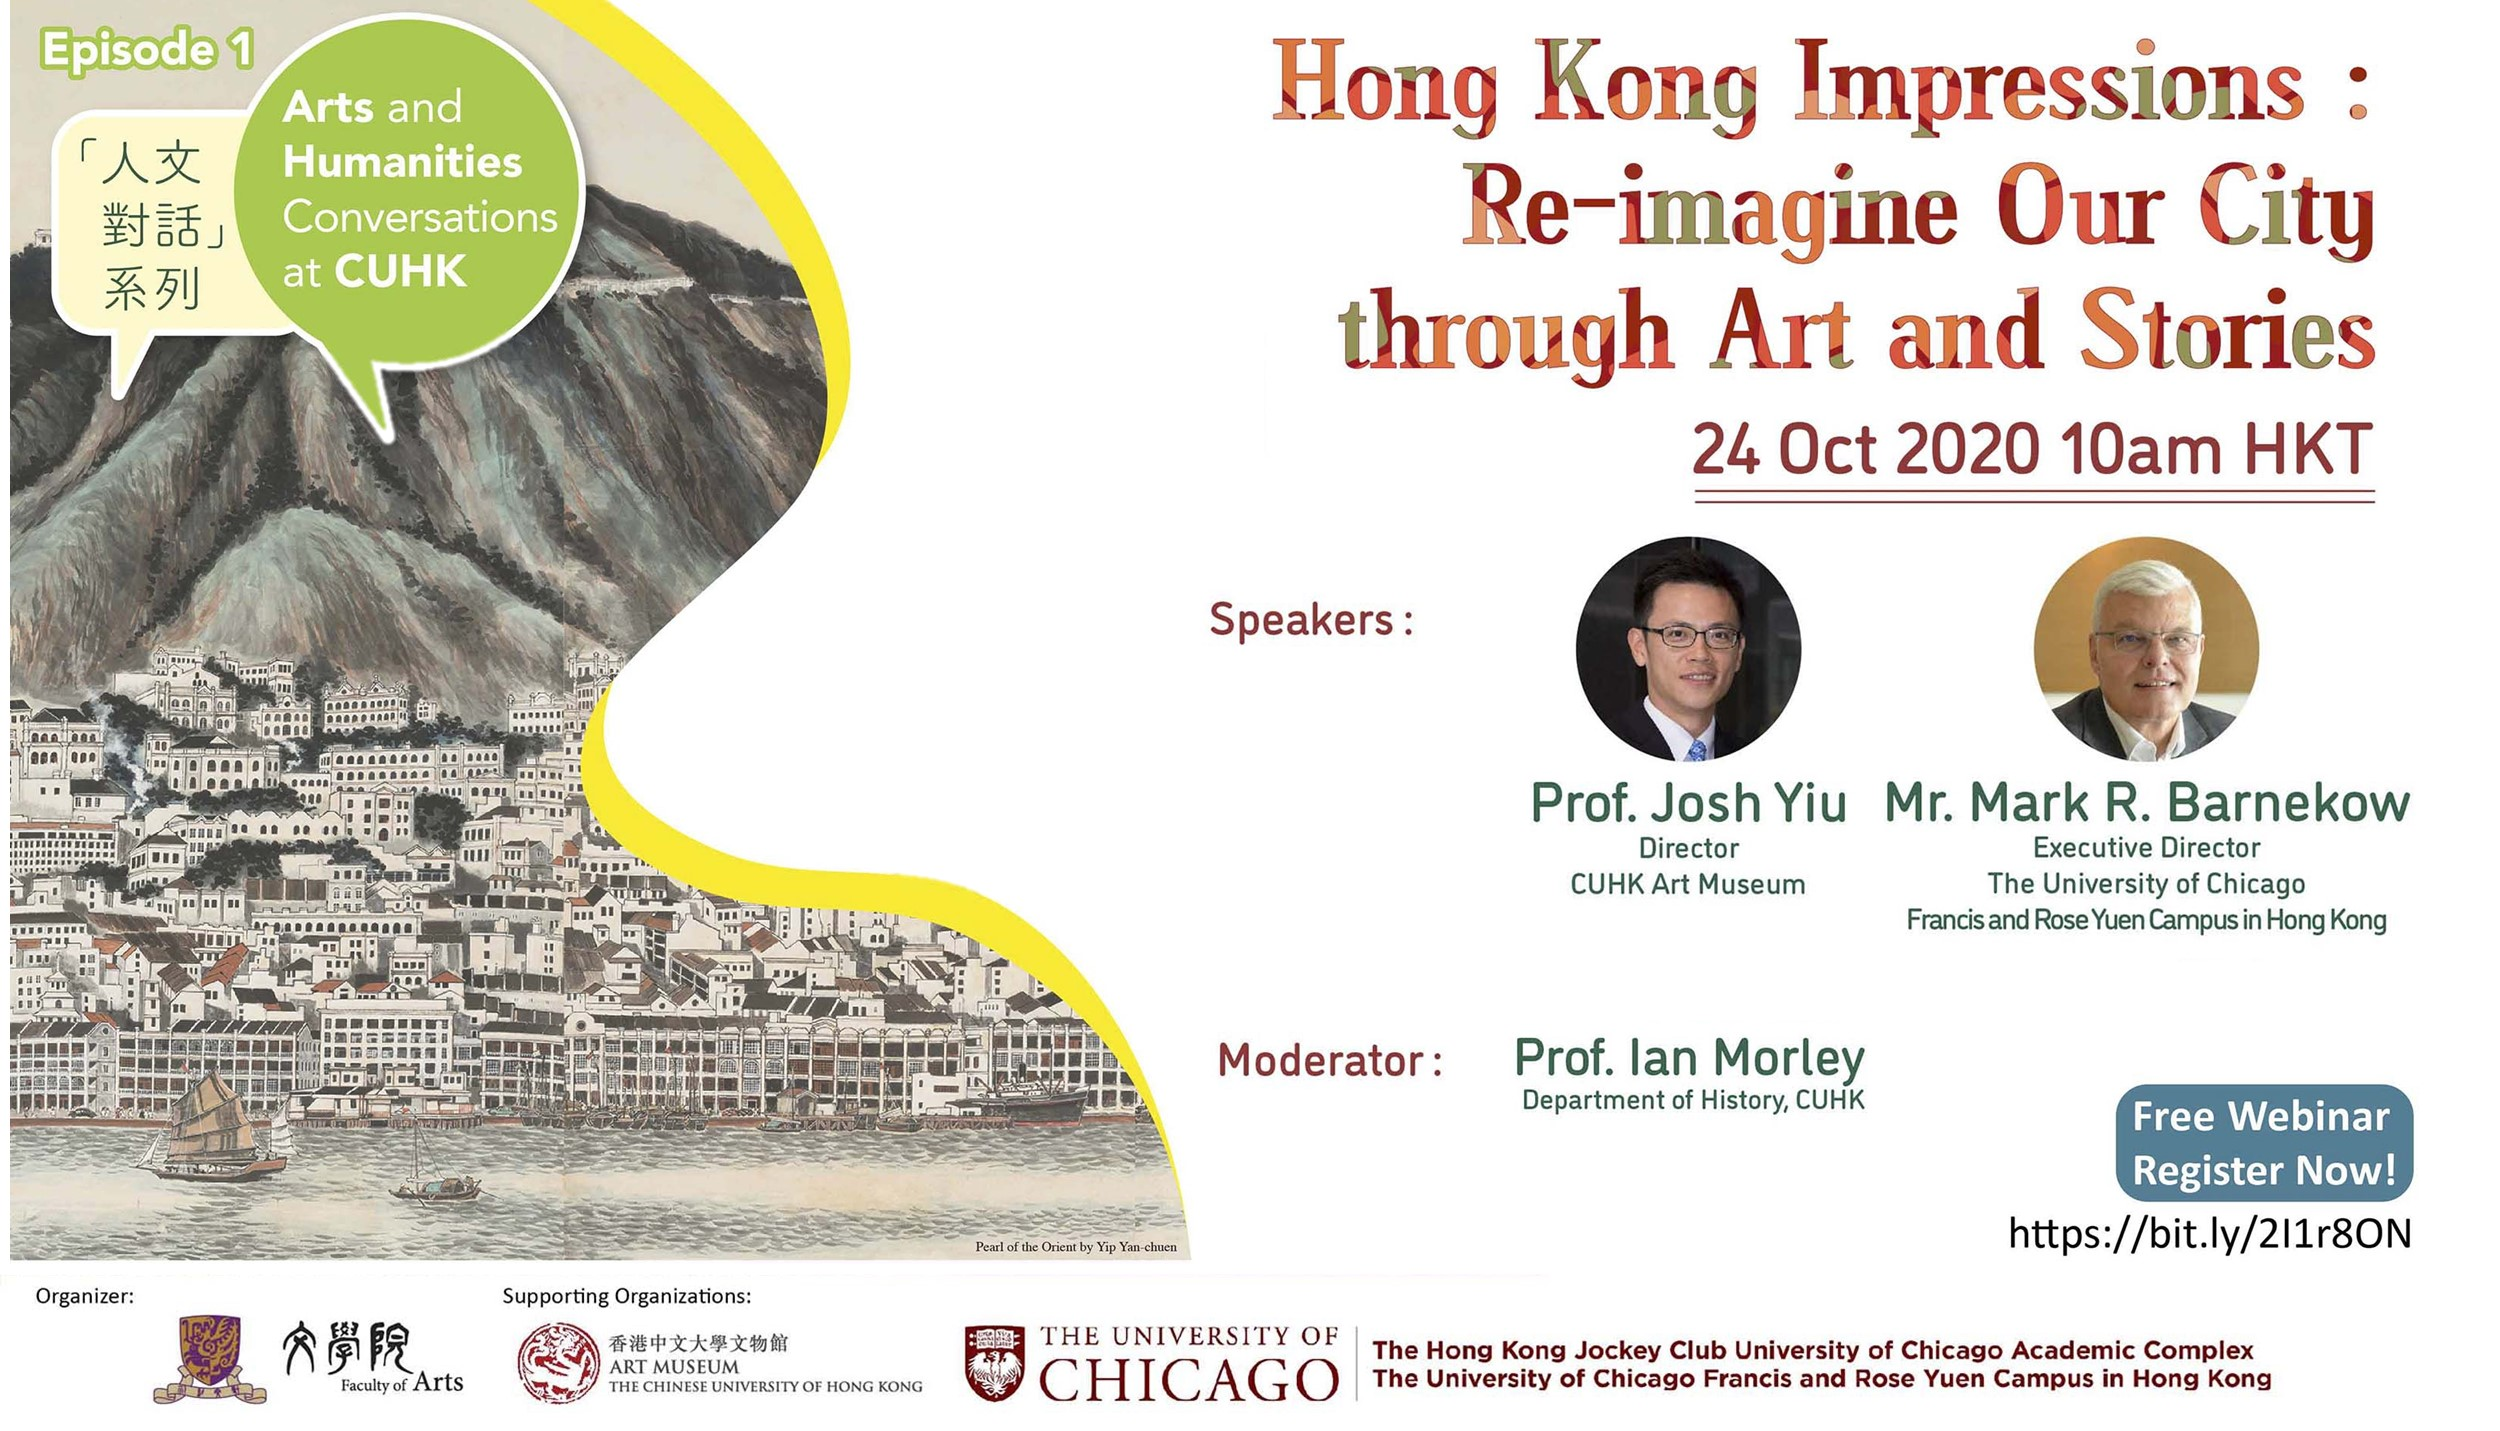 Hong Kong Impressions: Re-imagine Our City through Art and Stories